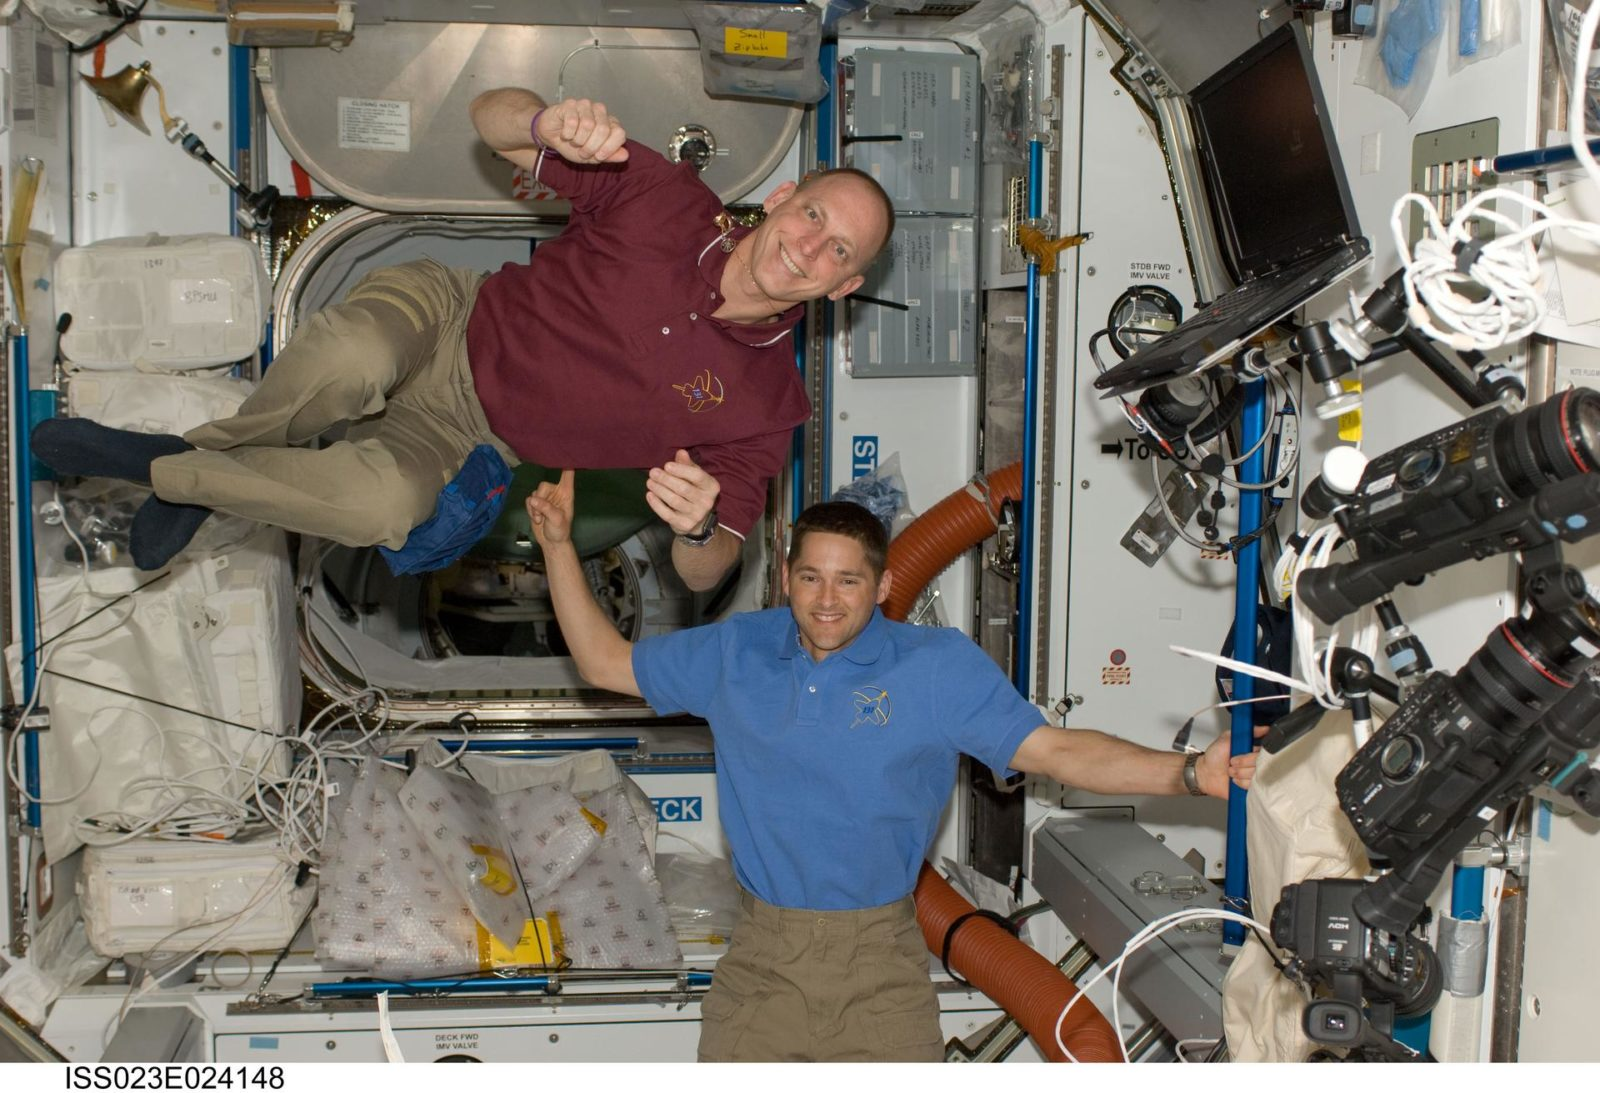 Anderson and Dutton in Node 2